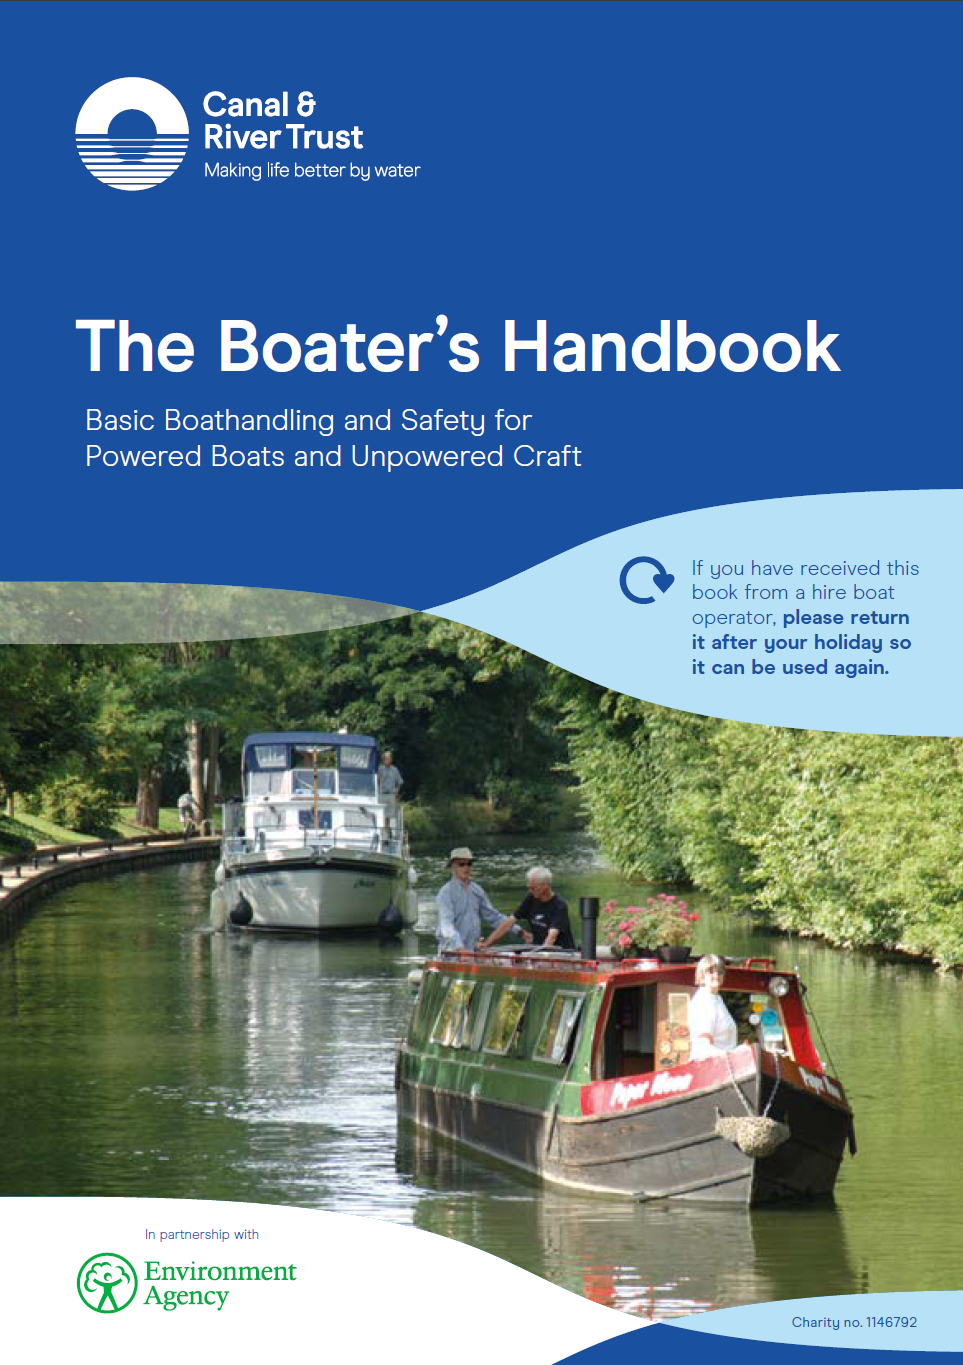 Canal and River Trust Boater's Handbook